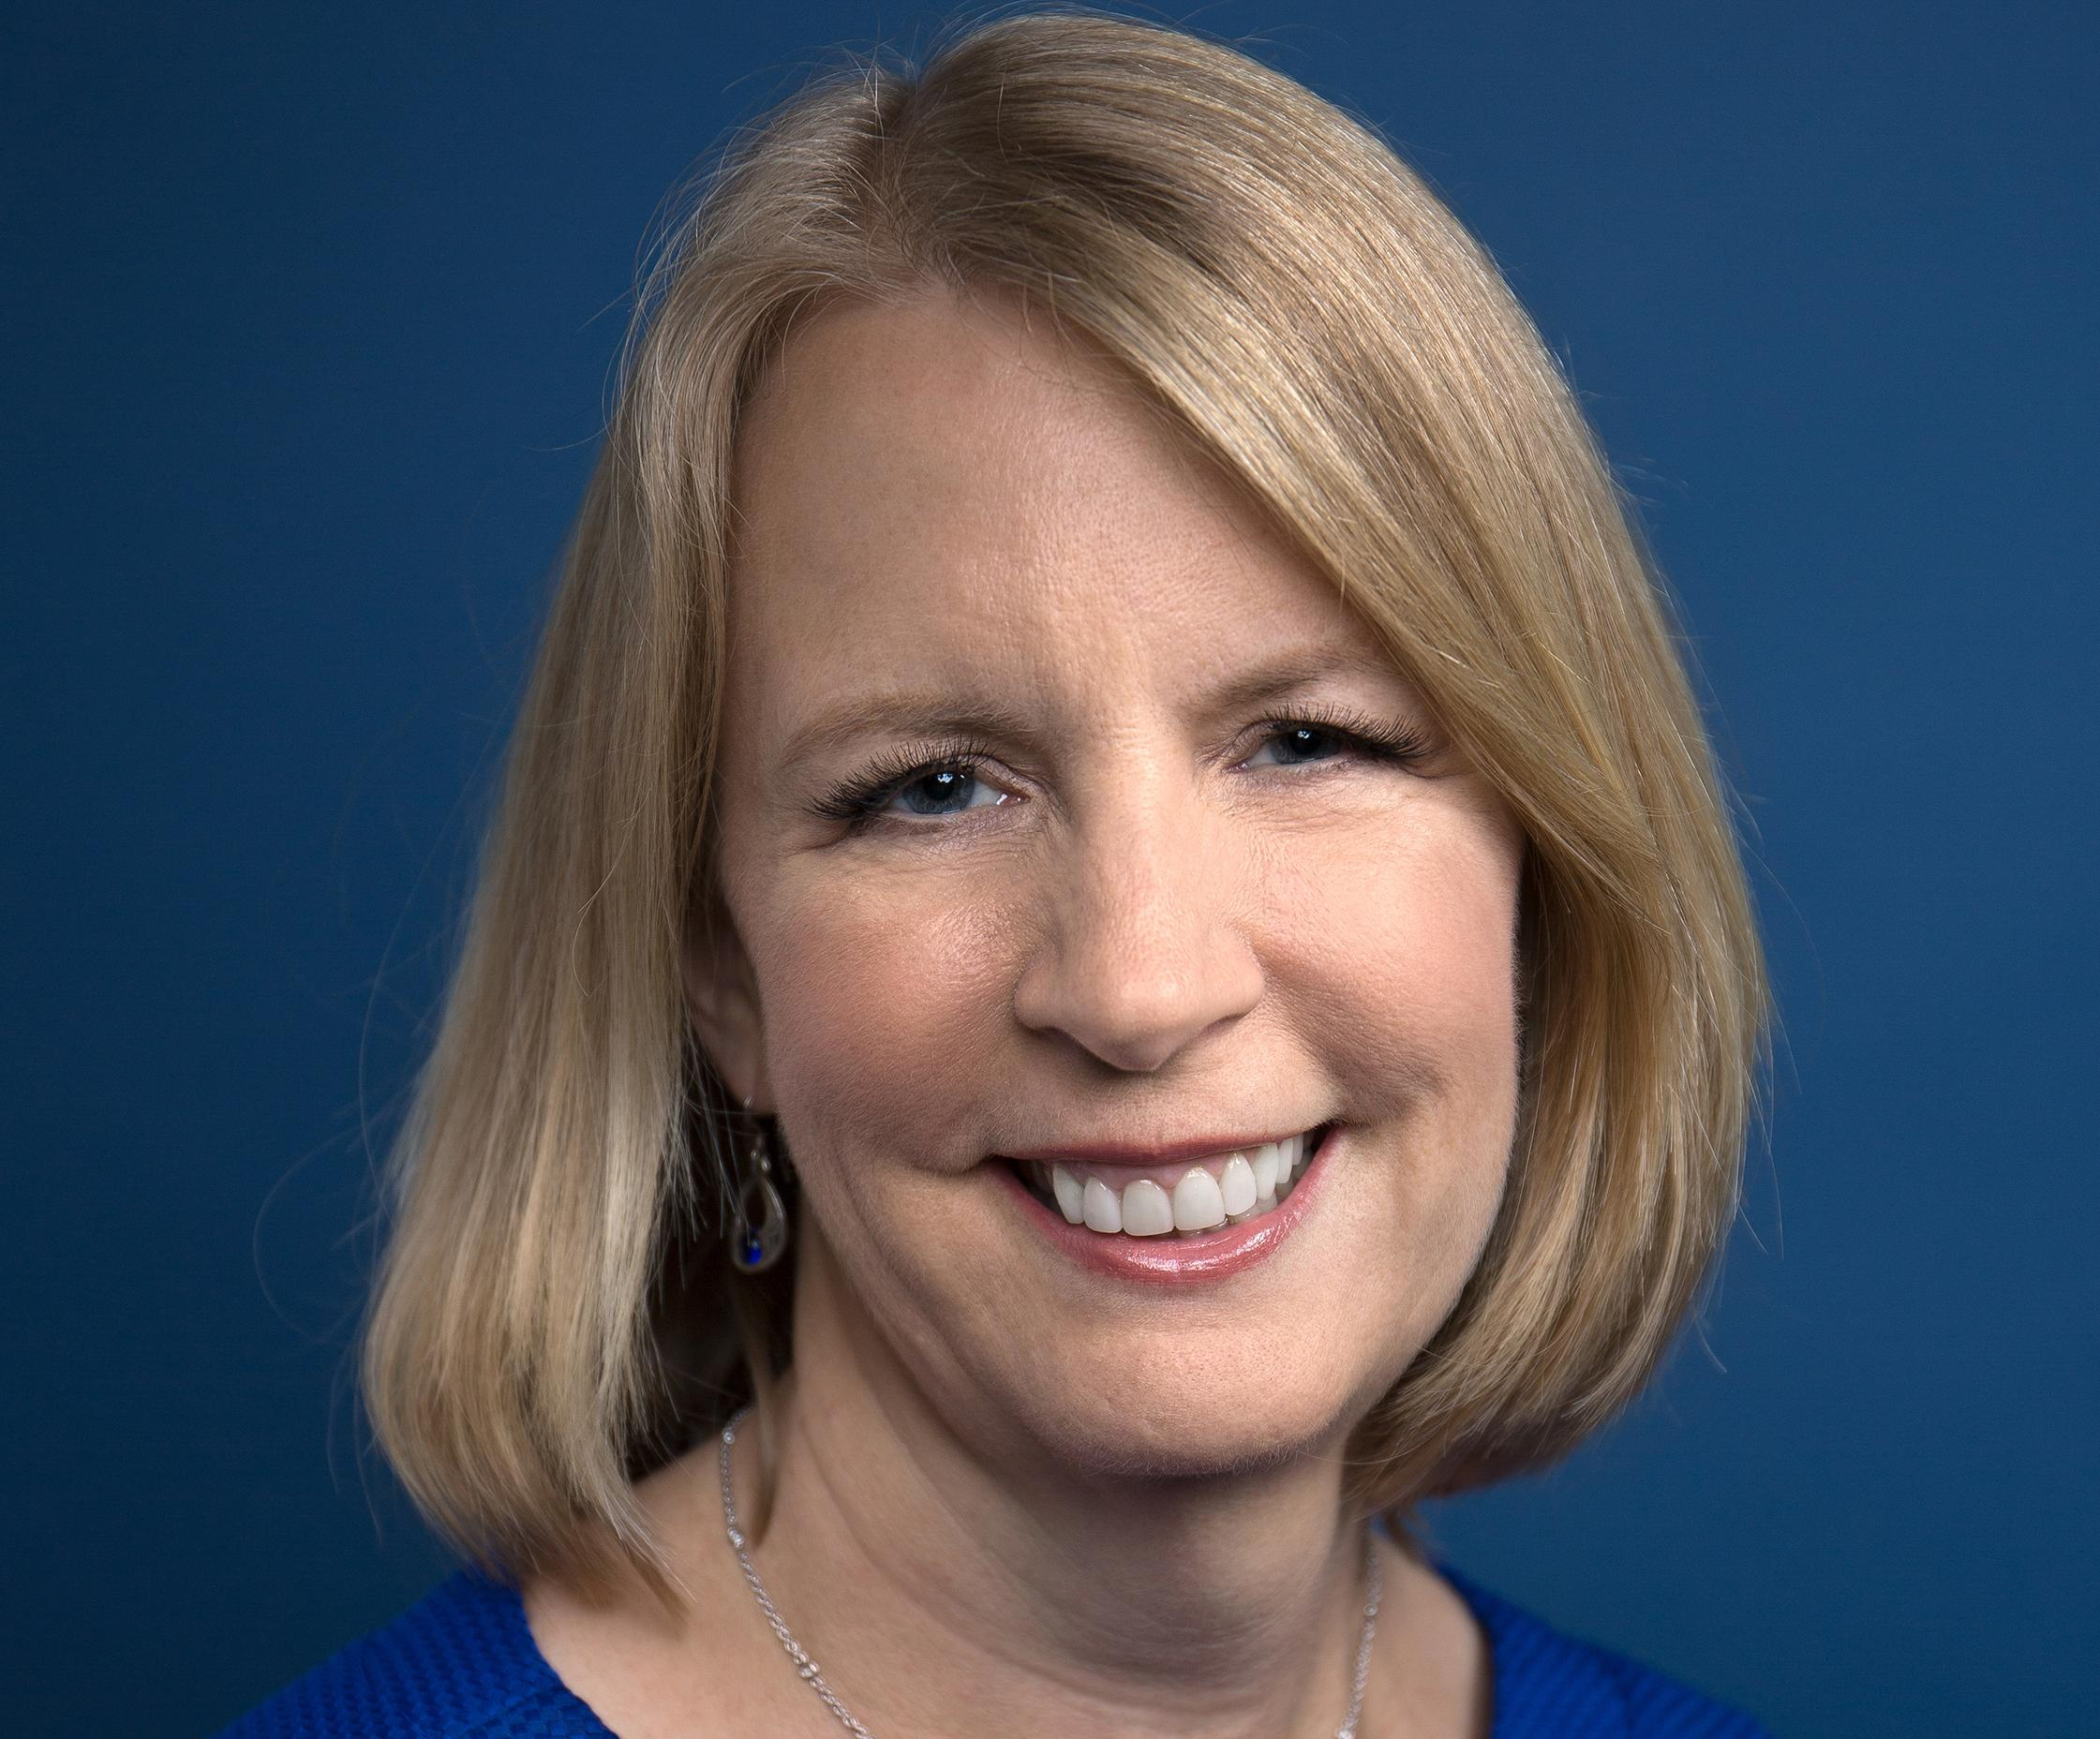 Liz Weston: Income can peak before you're ready